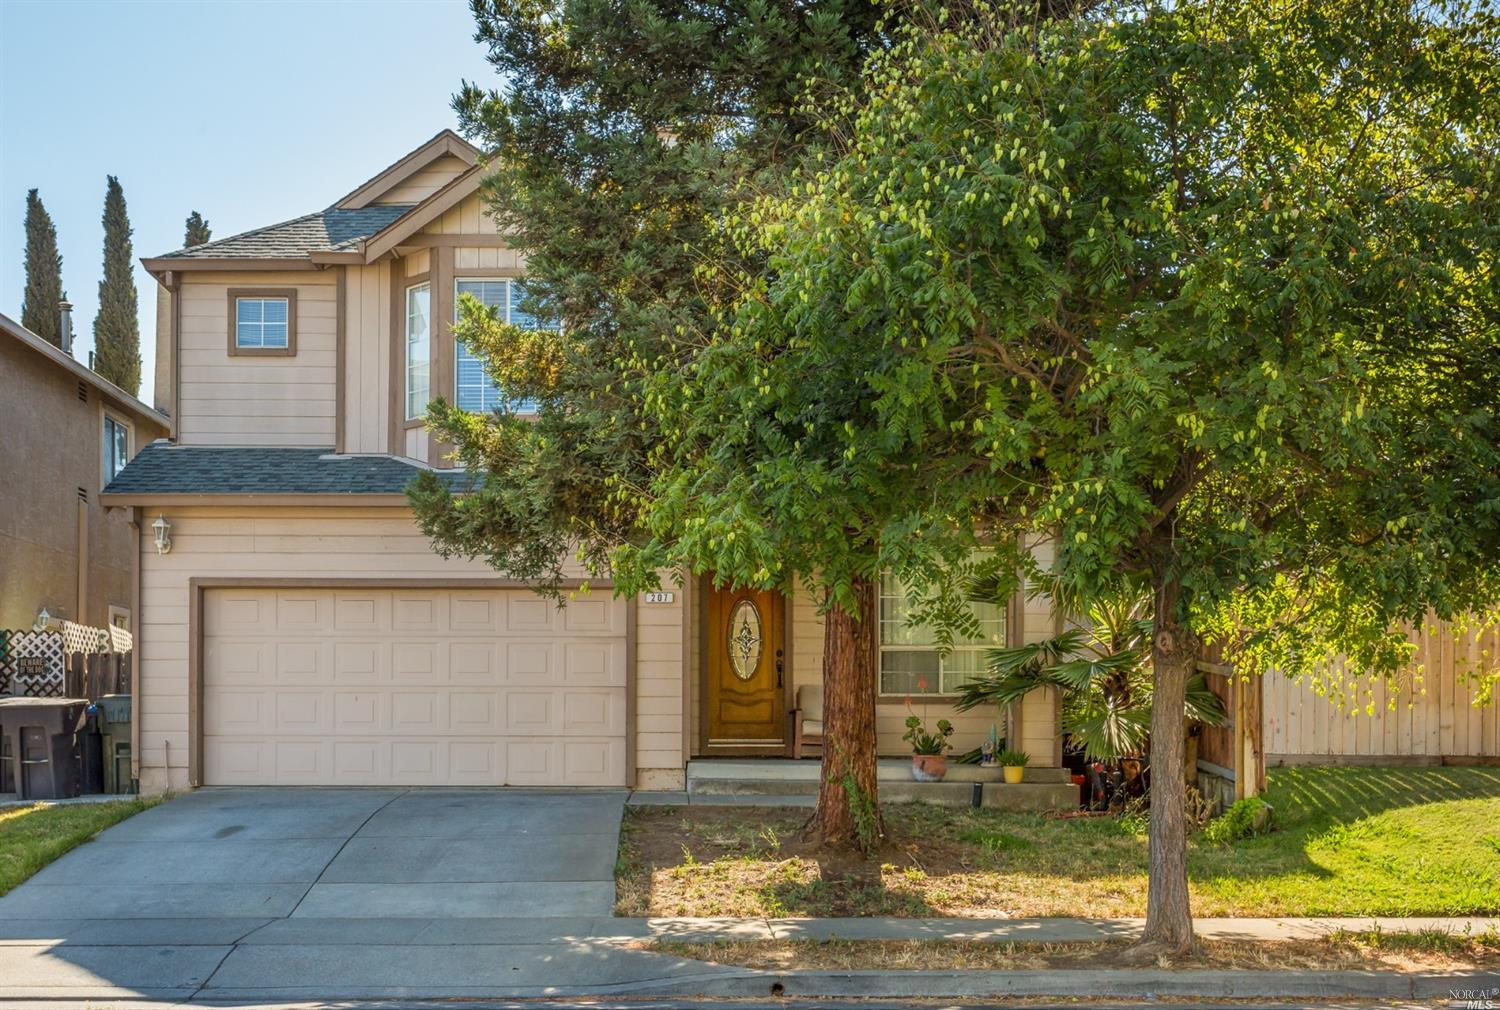 Cute as can be! 3bd/2.5 bath, MB w/walk in closet, vaulted ceilings, convenient location! close to Hwy 12, shopping, close to down town old Suisun to enjoy the marina views